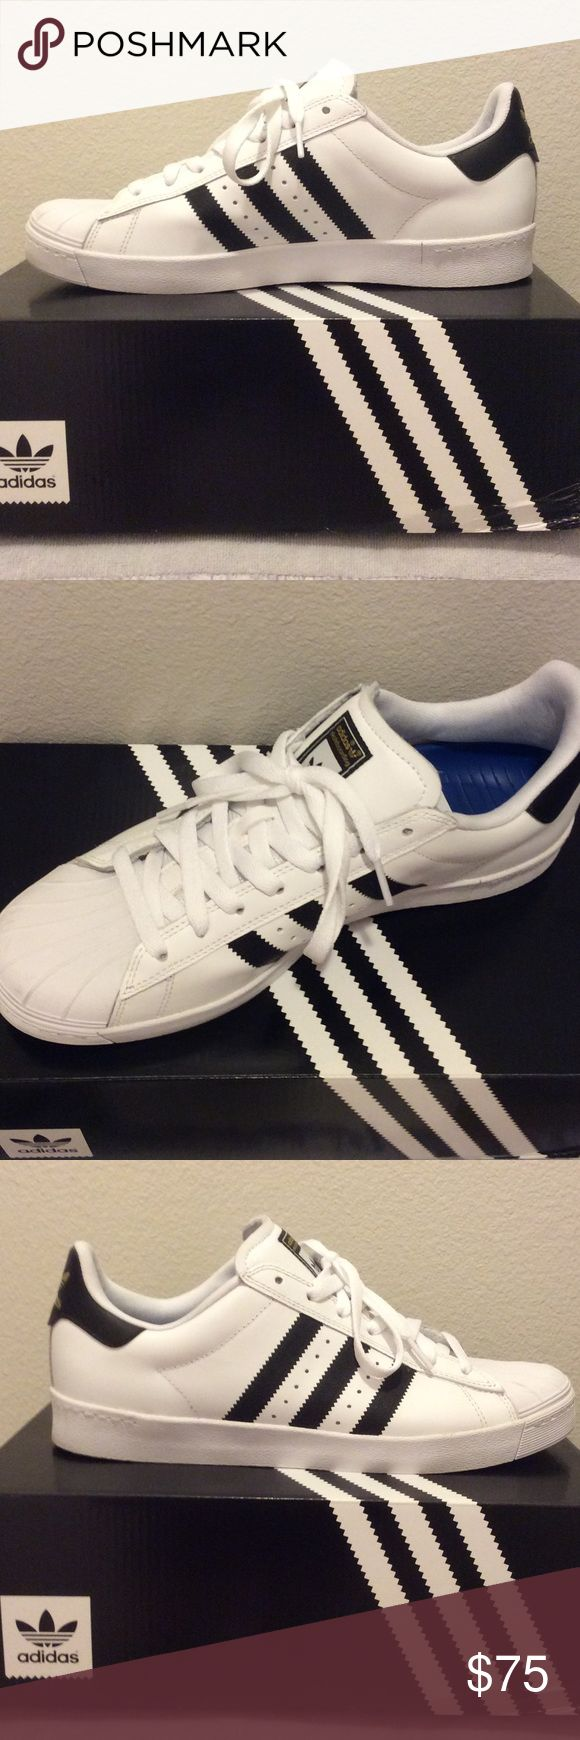 Adidas Superstar Vulc Adv Skateboarding Adidas number one brand of sneakers, this pair new NWT...  accompanied by original box. Adidas Shoes Sneakers